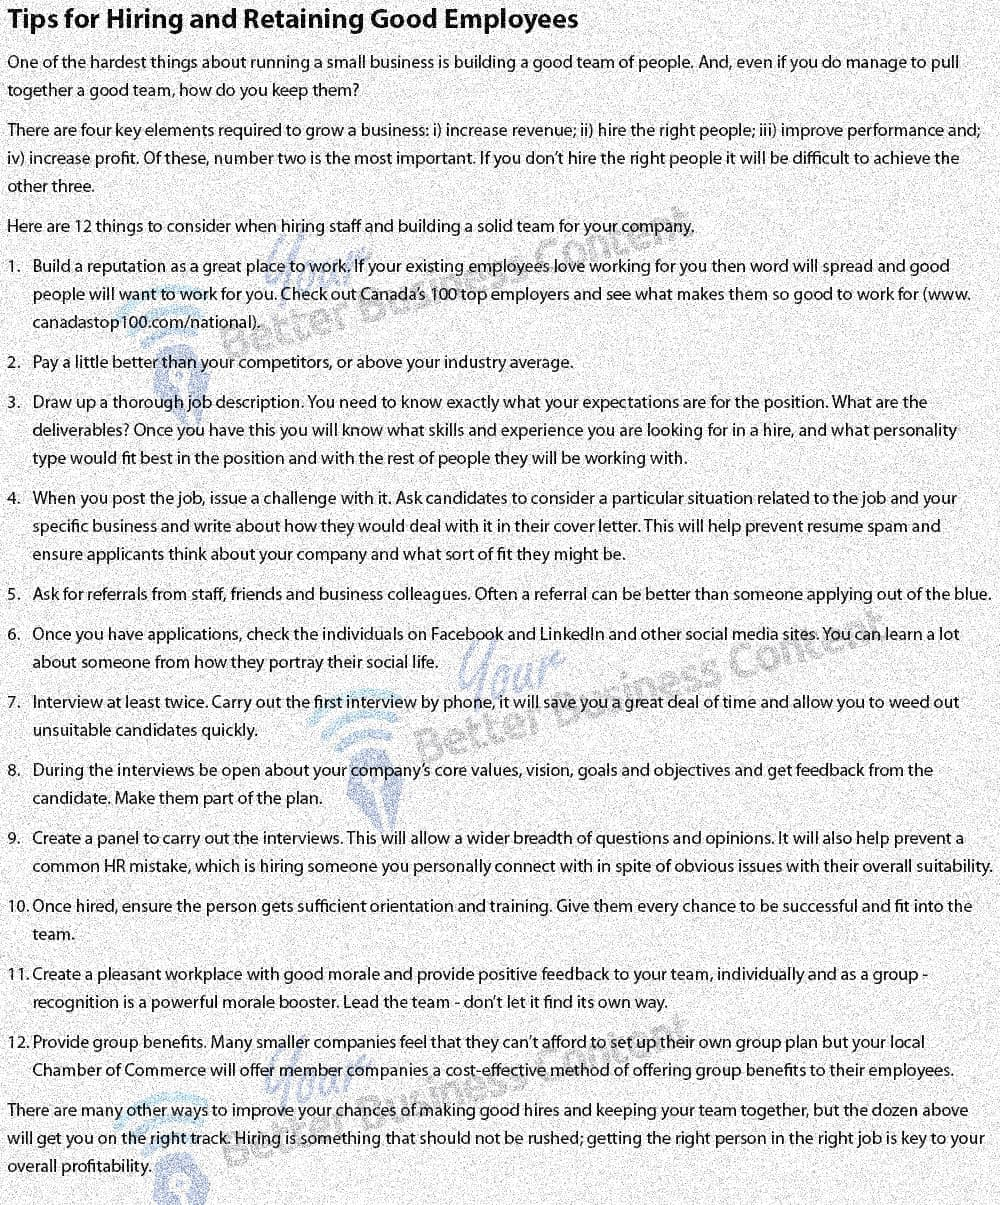 hr-10-16-005-12_tips_for_hiring_and_retaining_good_employees